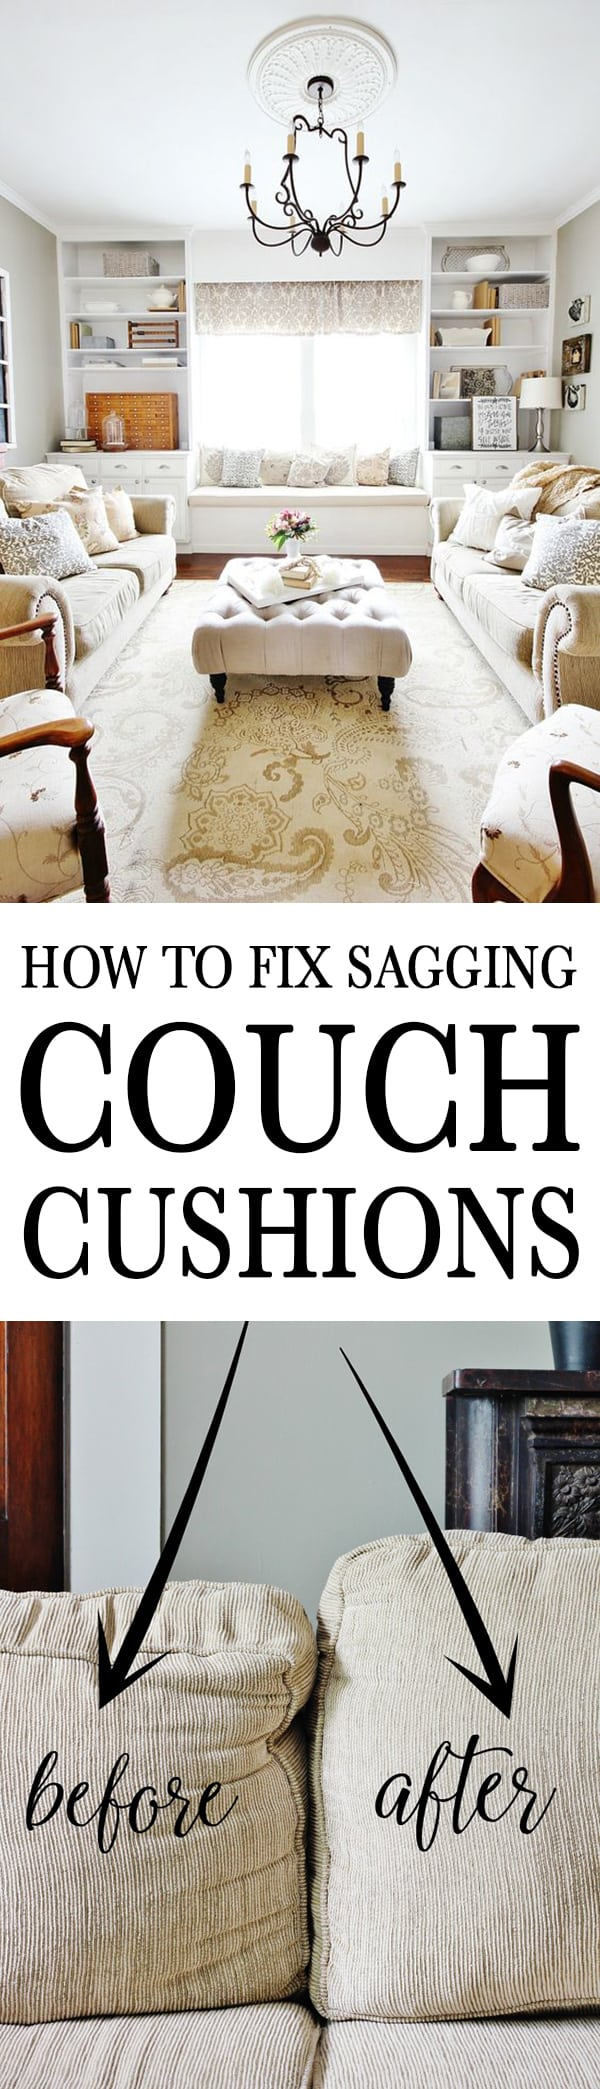 how to fix sagging couch cushions tutorial step-by-step